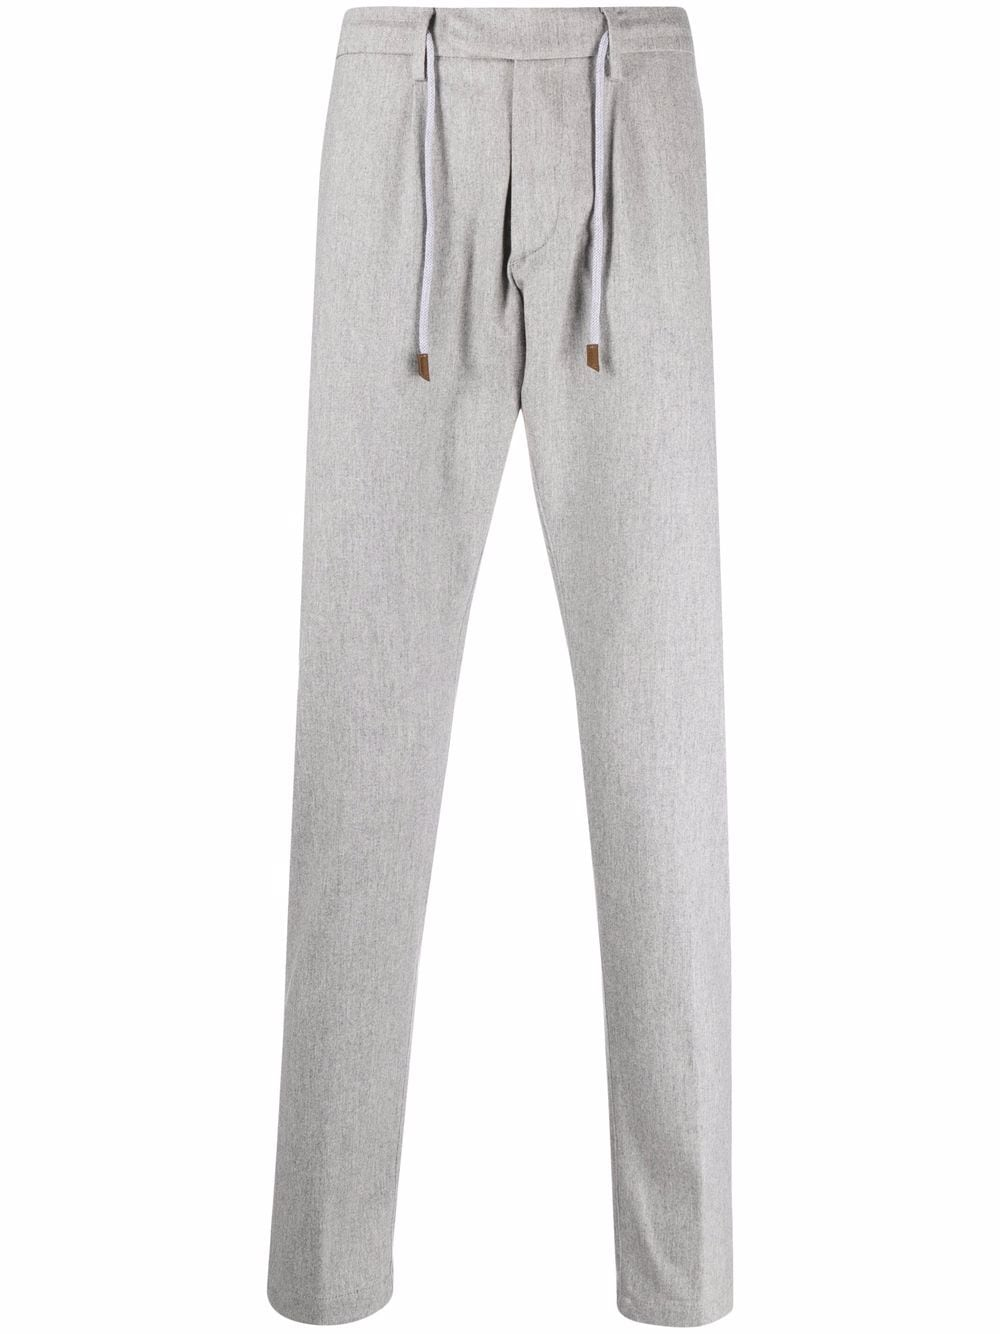 grey wool and cashmere drawstring tailored trousers  ELEVENTY |  | D75PANB21-TES0D03713